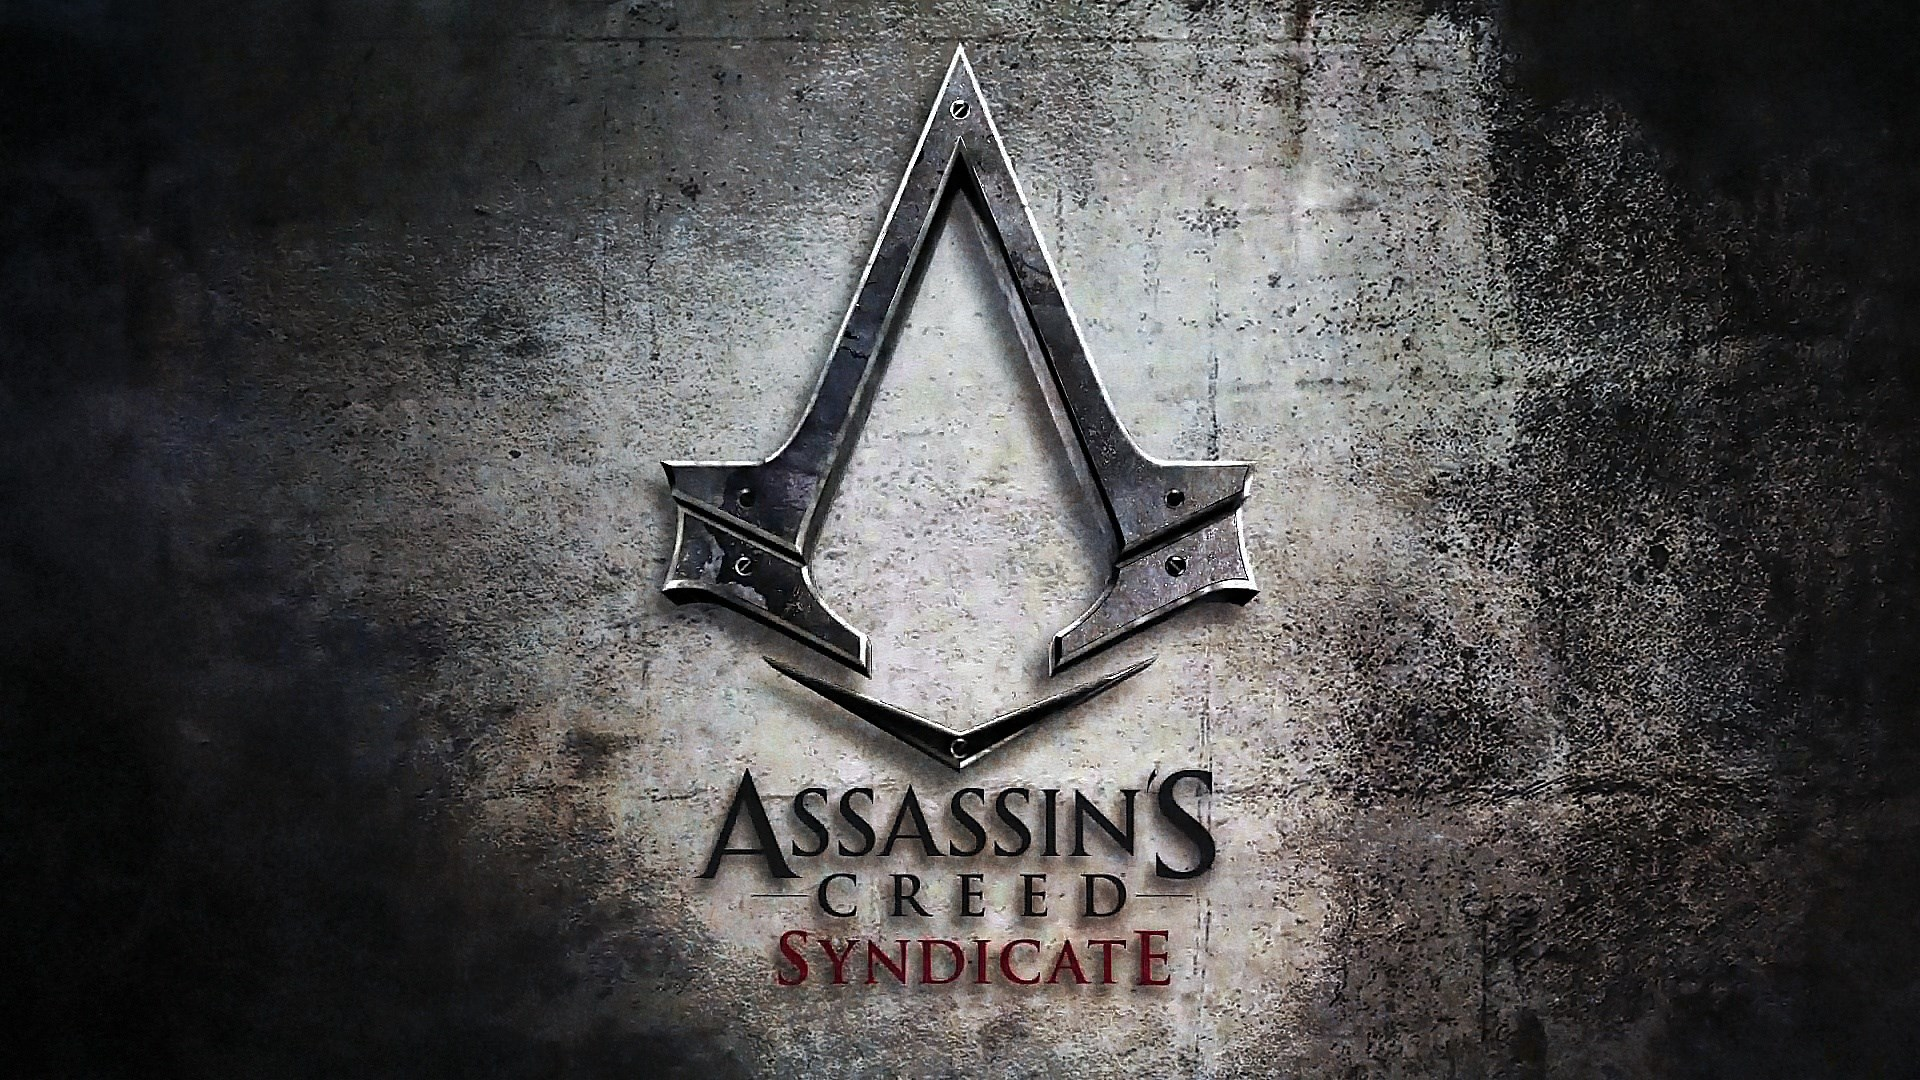 Assassins Creed Logo Wallpapers Free ~ Sdeerwallpaper